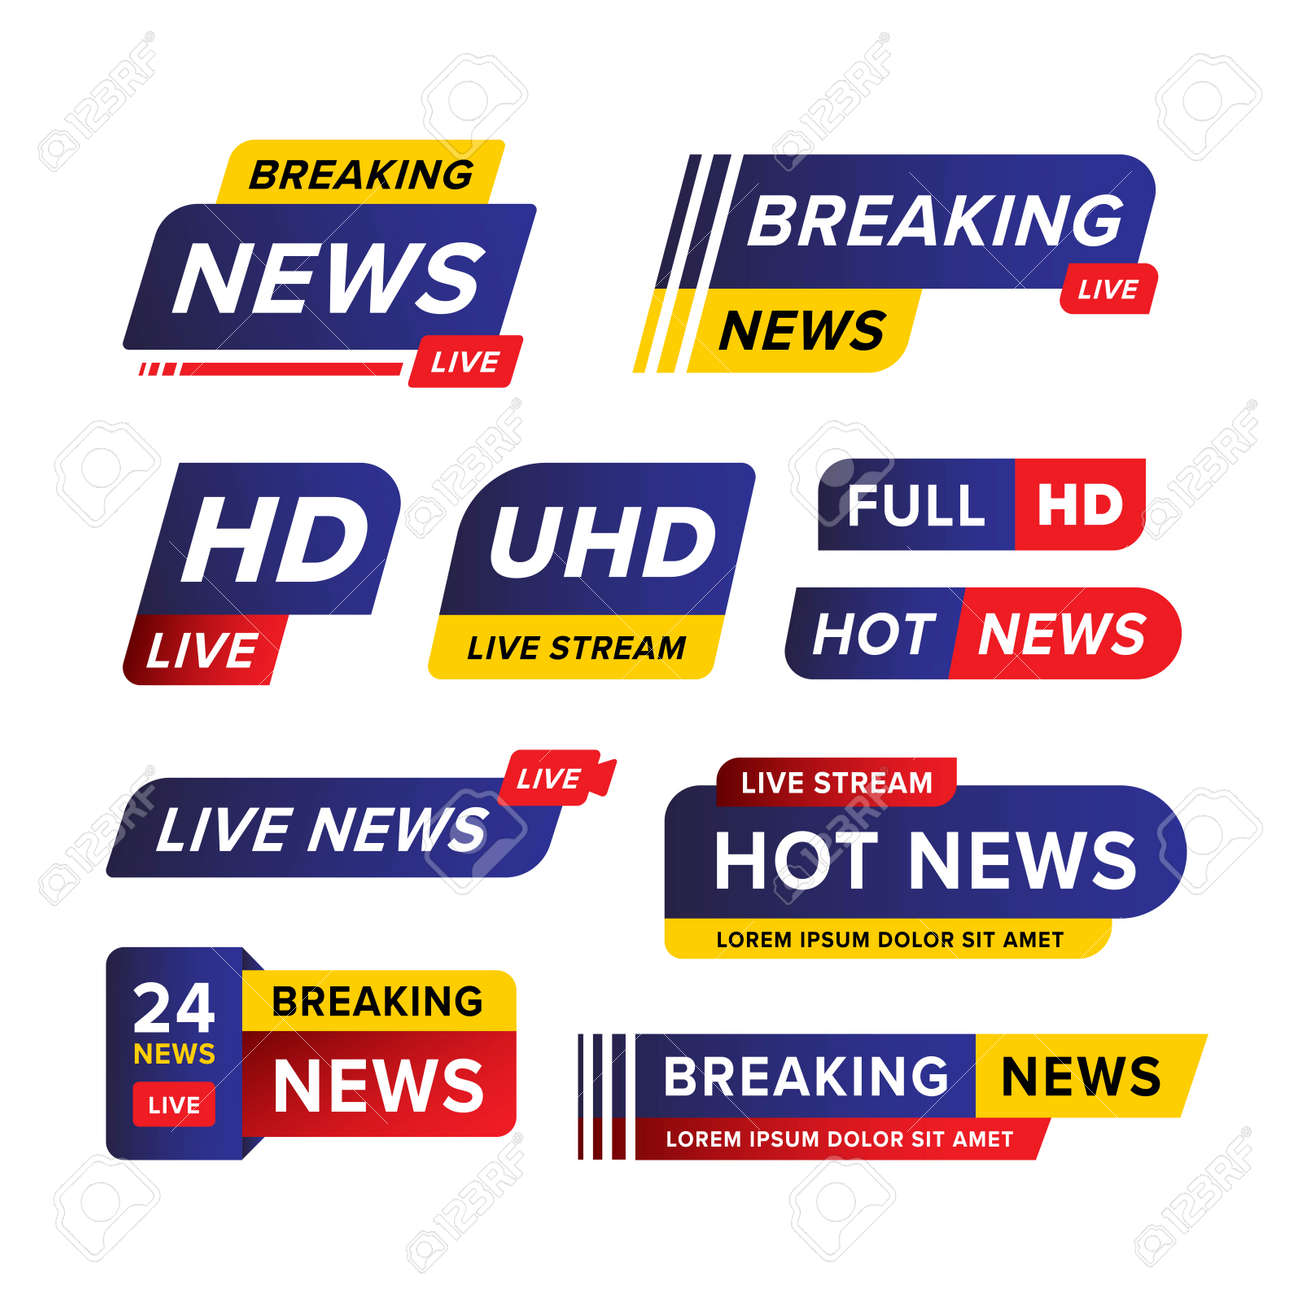 Set of breaking news banner template designed in blue red and yellow in various different shape and style. Creative vector illustration. Premium vector - 162381917